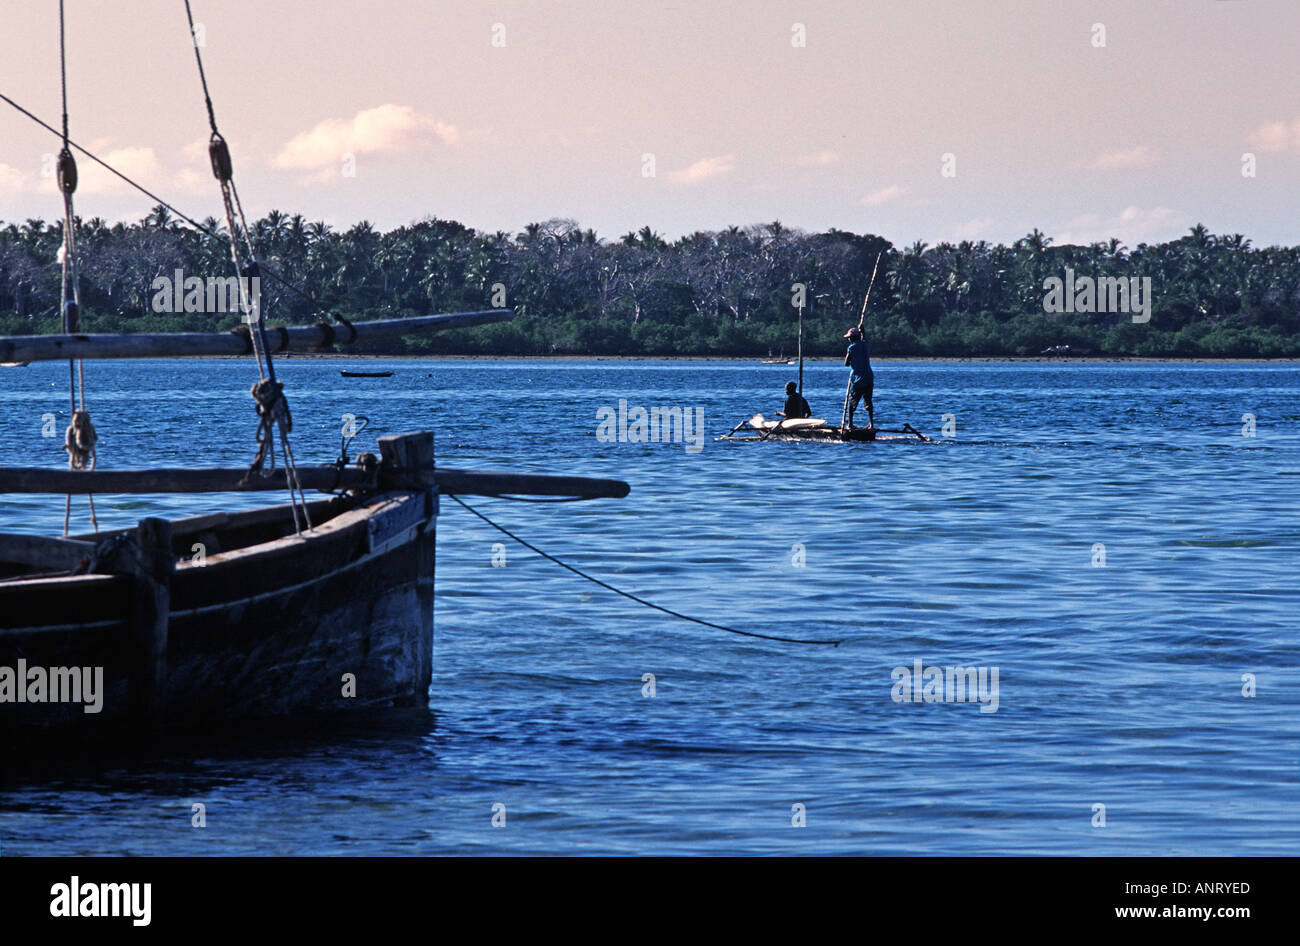 Tanzanian fishermen in their outrigger canoe seen beyond a dhow moored in the straits between Chole and Mafia Island TANZANIA - Stock Image